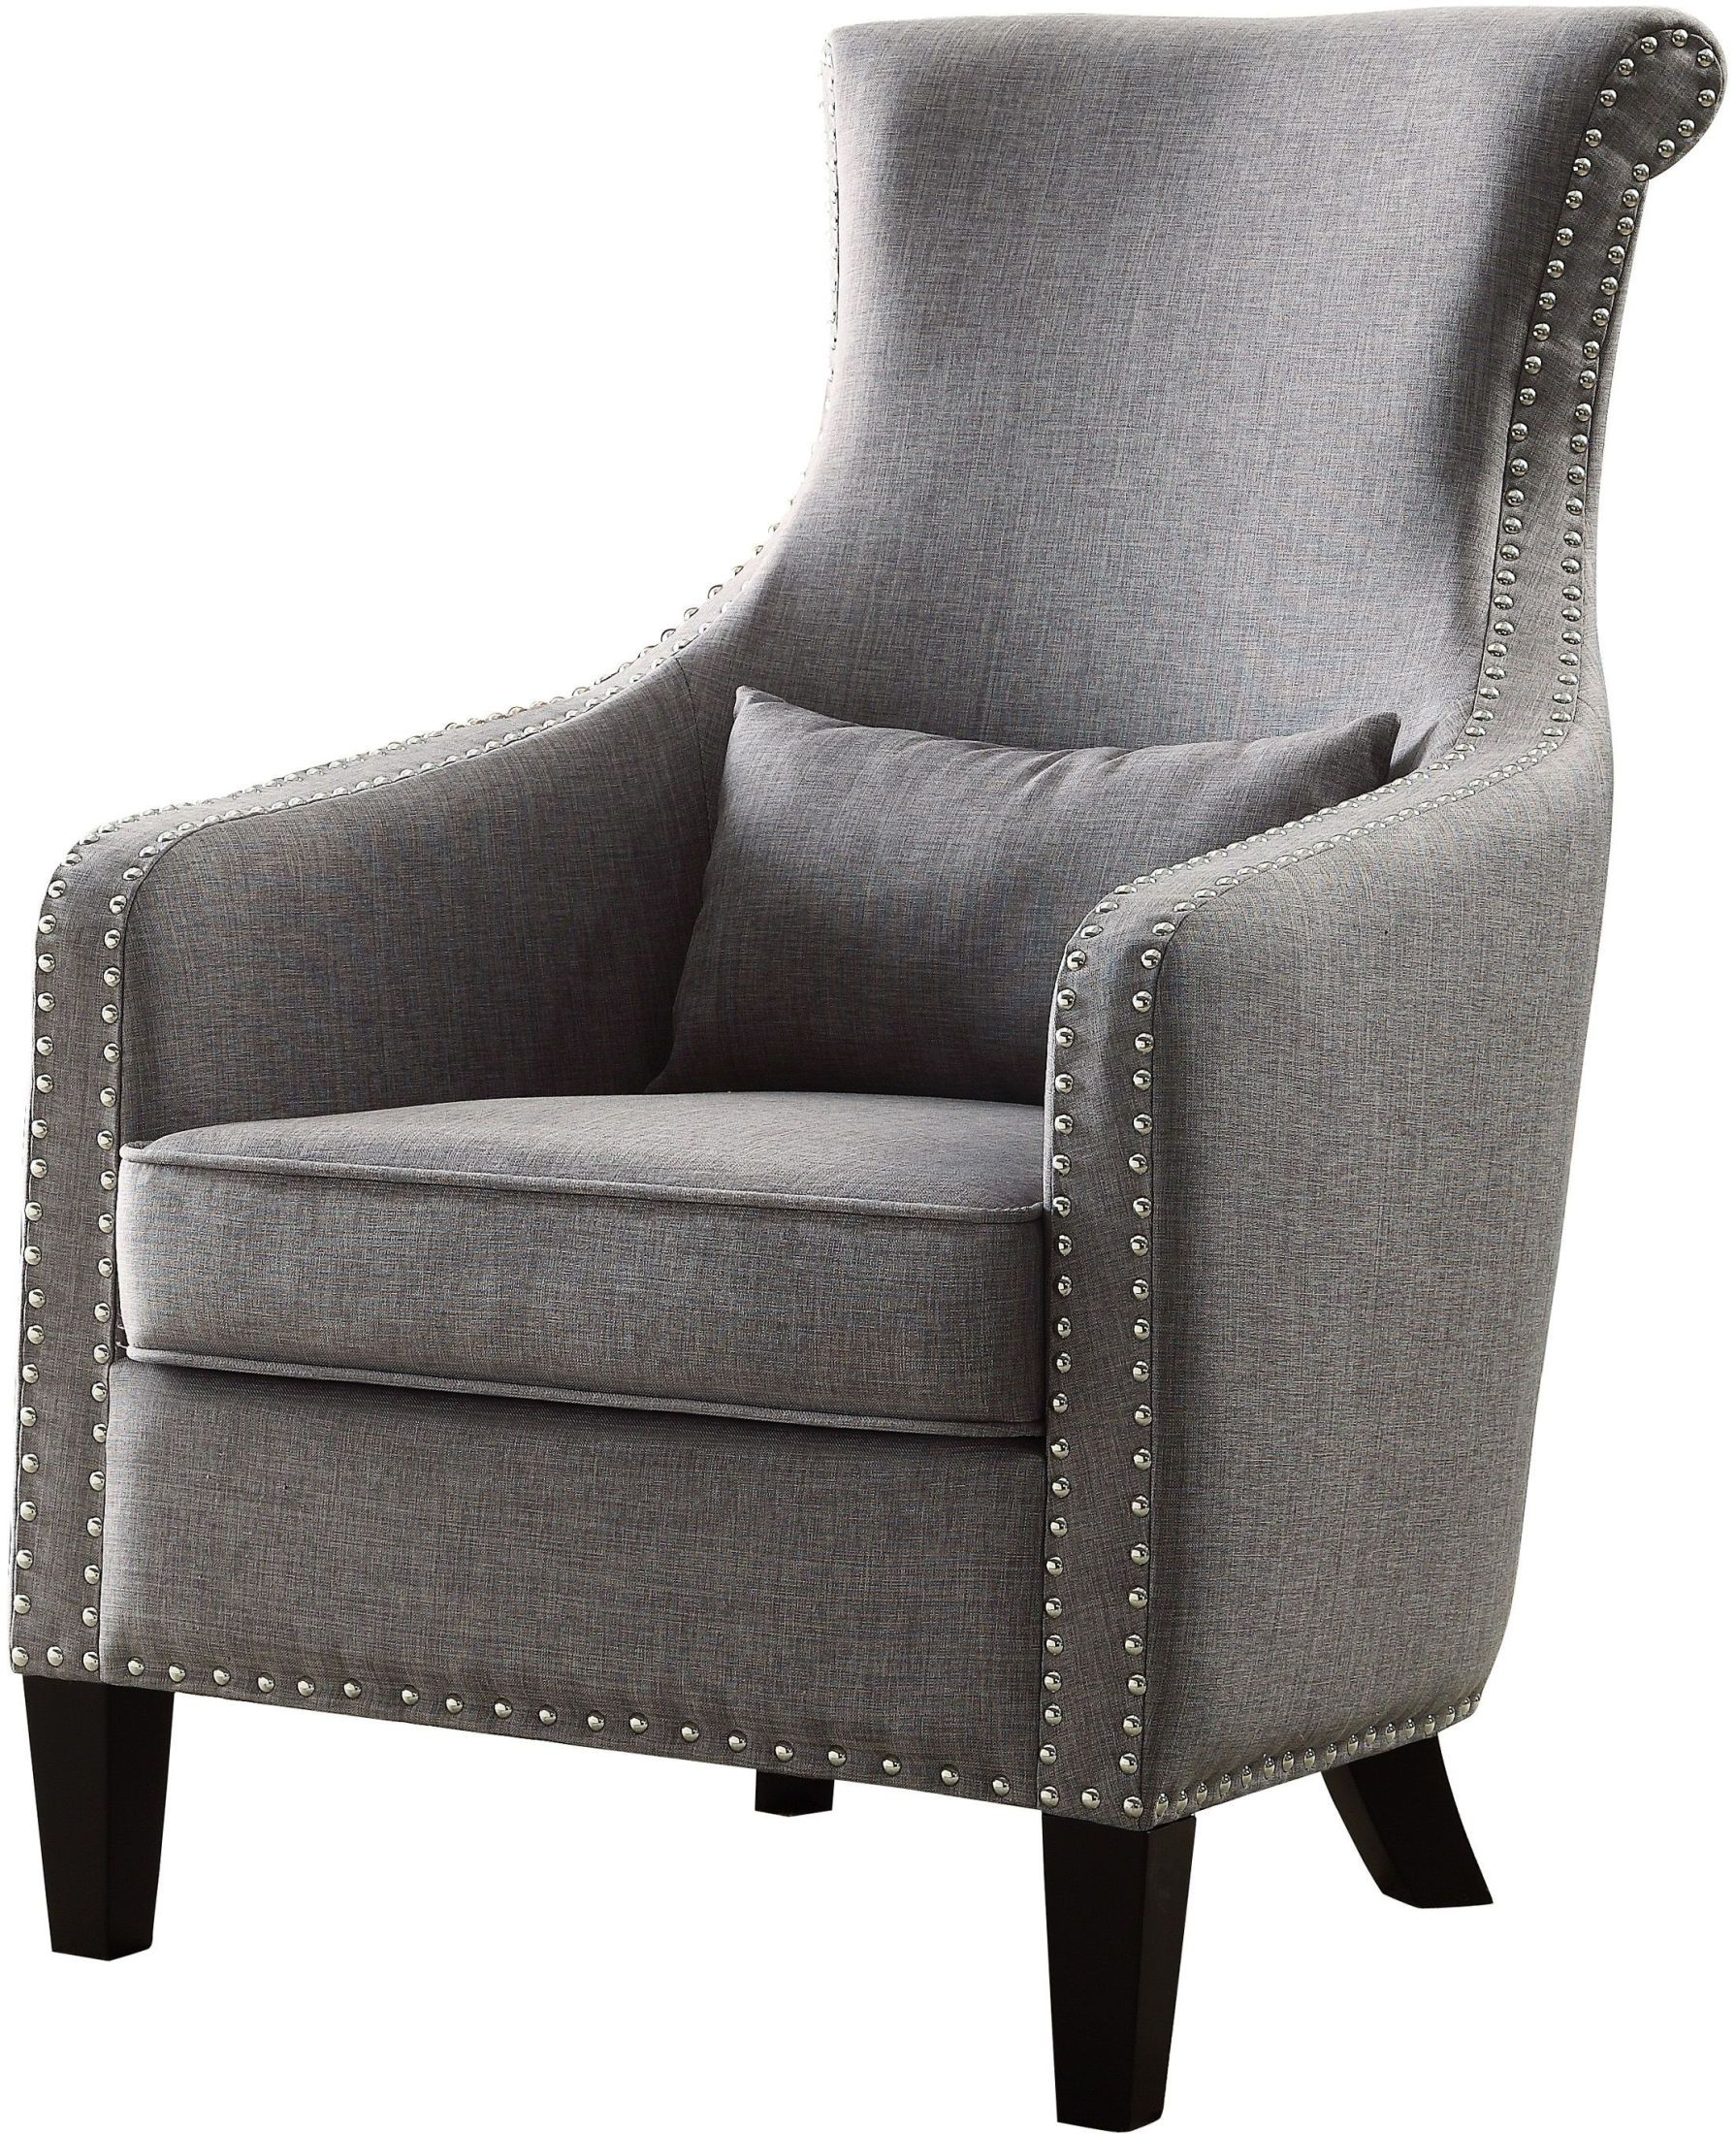 Grey Accent Chairs Arles Grey Accent Chair 1270f1s Homelegance